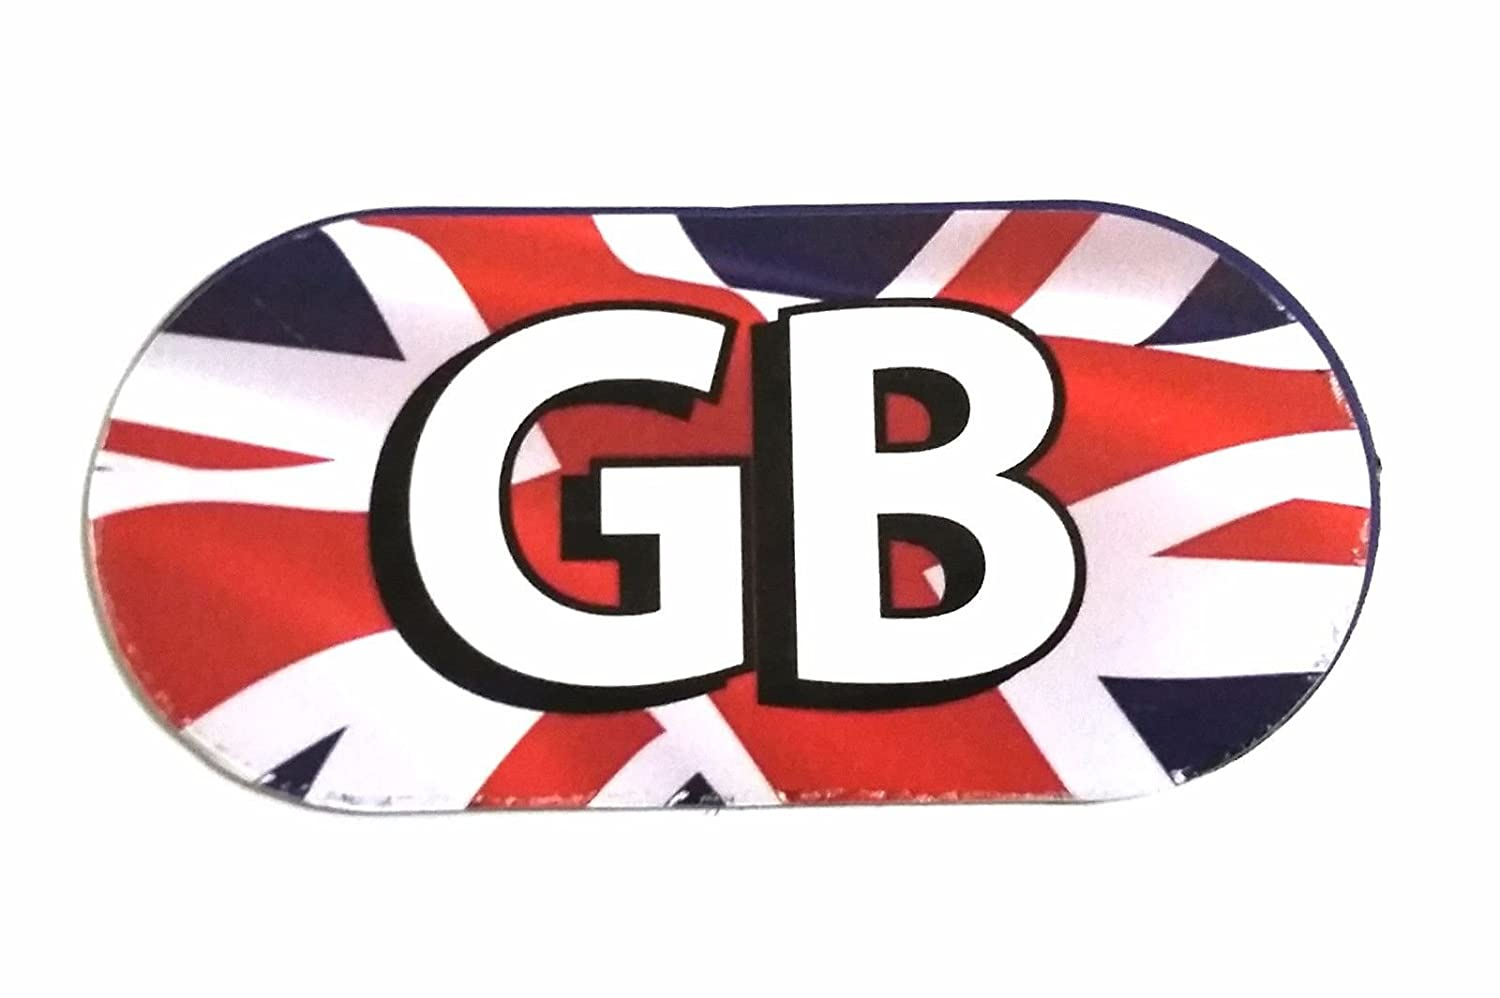 Union Jack Magnetic GB Vehicle Plate Travel Driving Abroad Legally Required